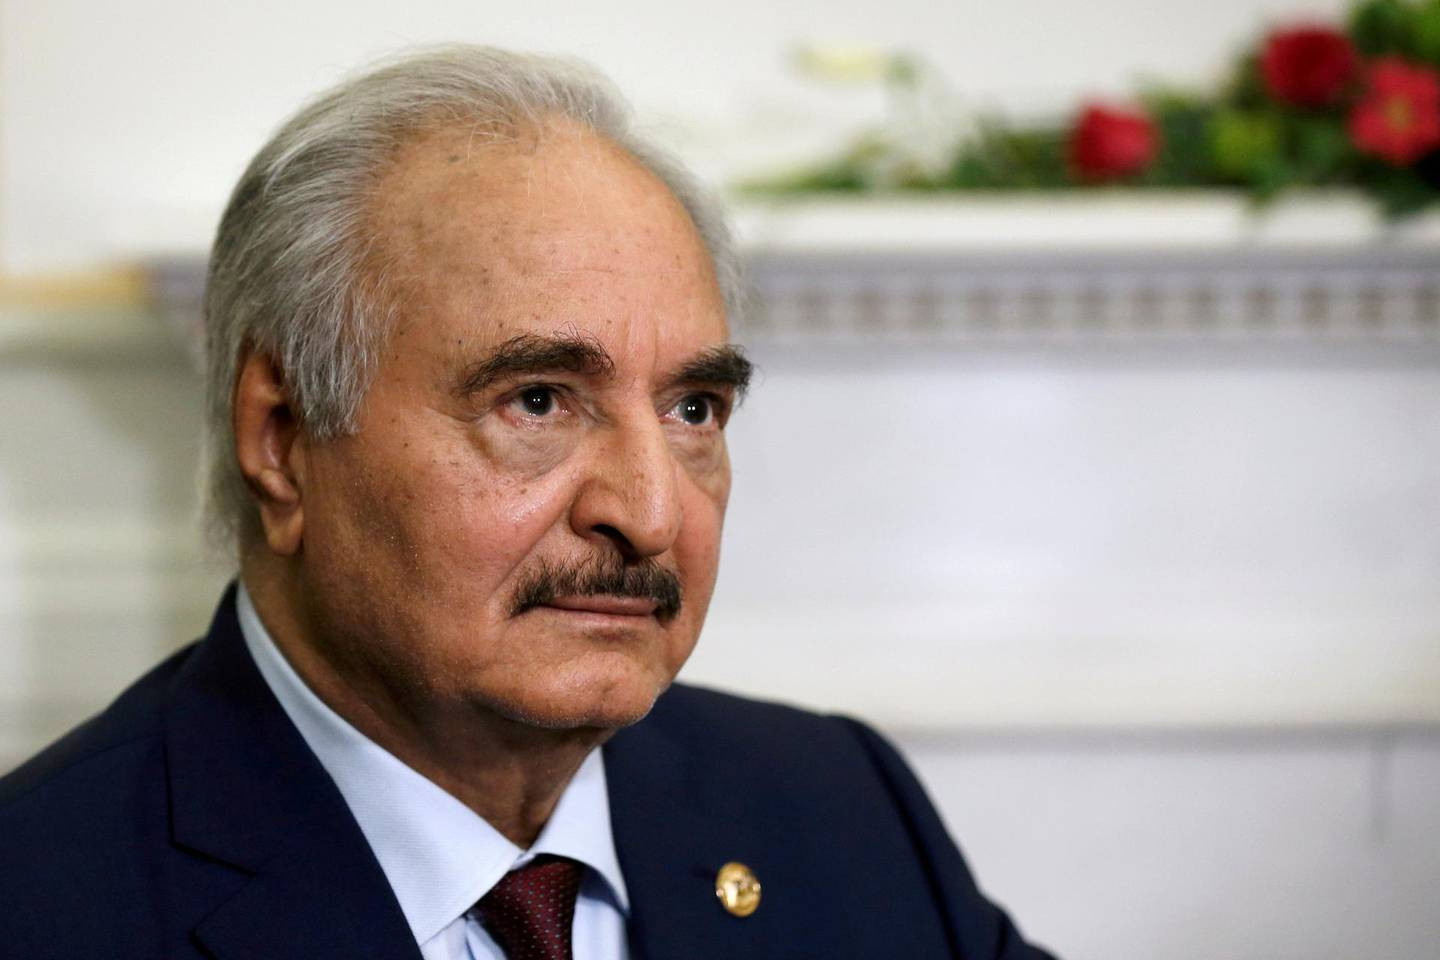 FILE PHOTO: Libyan commander Khalifa Haftar meets Greek Foreign Minister Nikos Dendias (not pictured) at the Foreign Ministry in Athens, Greece, January 17, 2020. REUTERS/Costas Baltas/File Photo